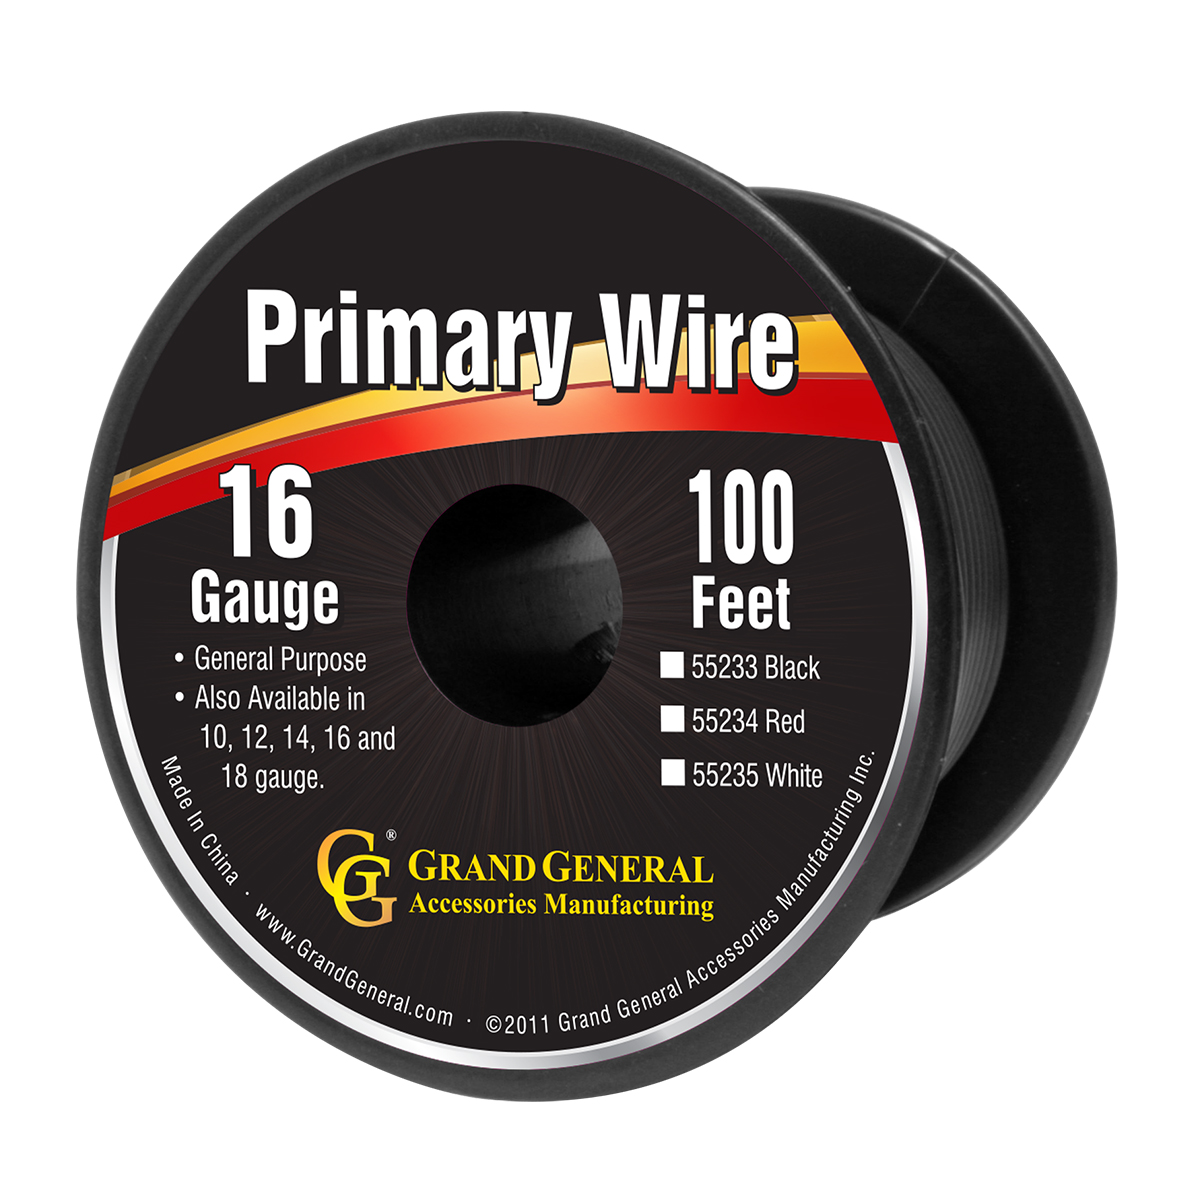 55233 Primary Wire in 16 Gauge, 100 Feet